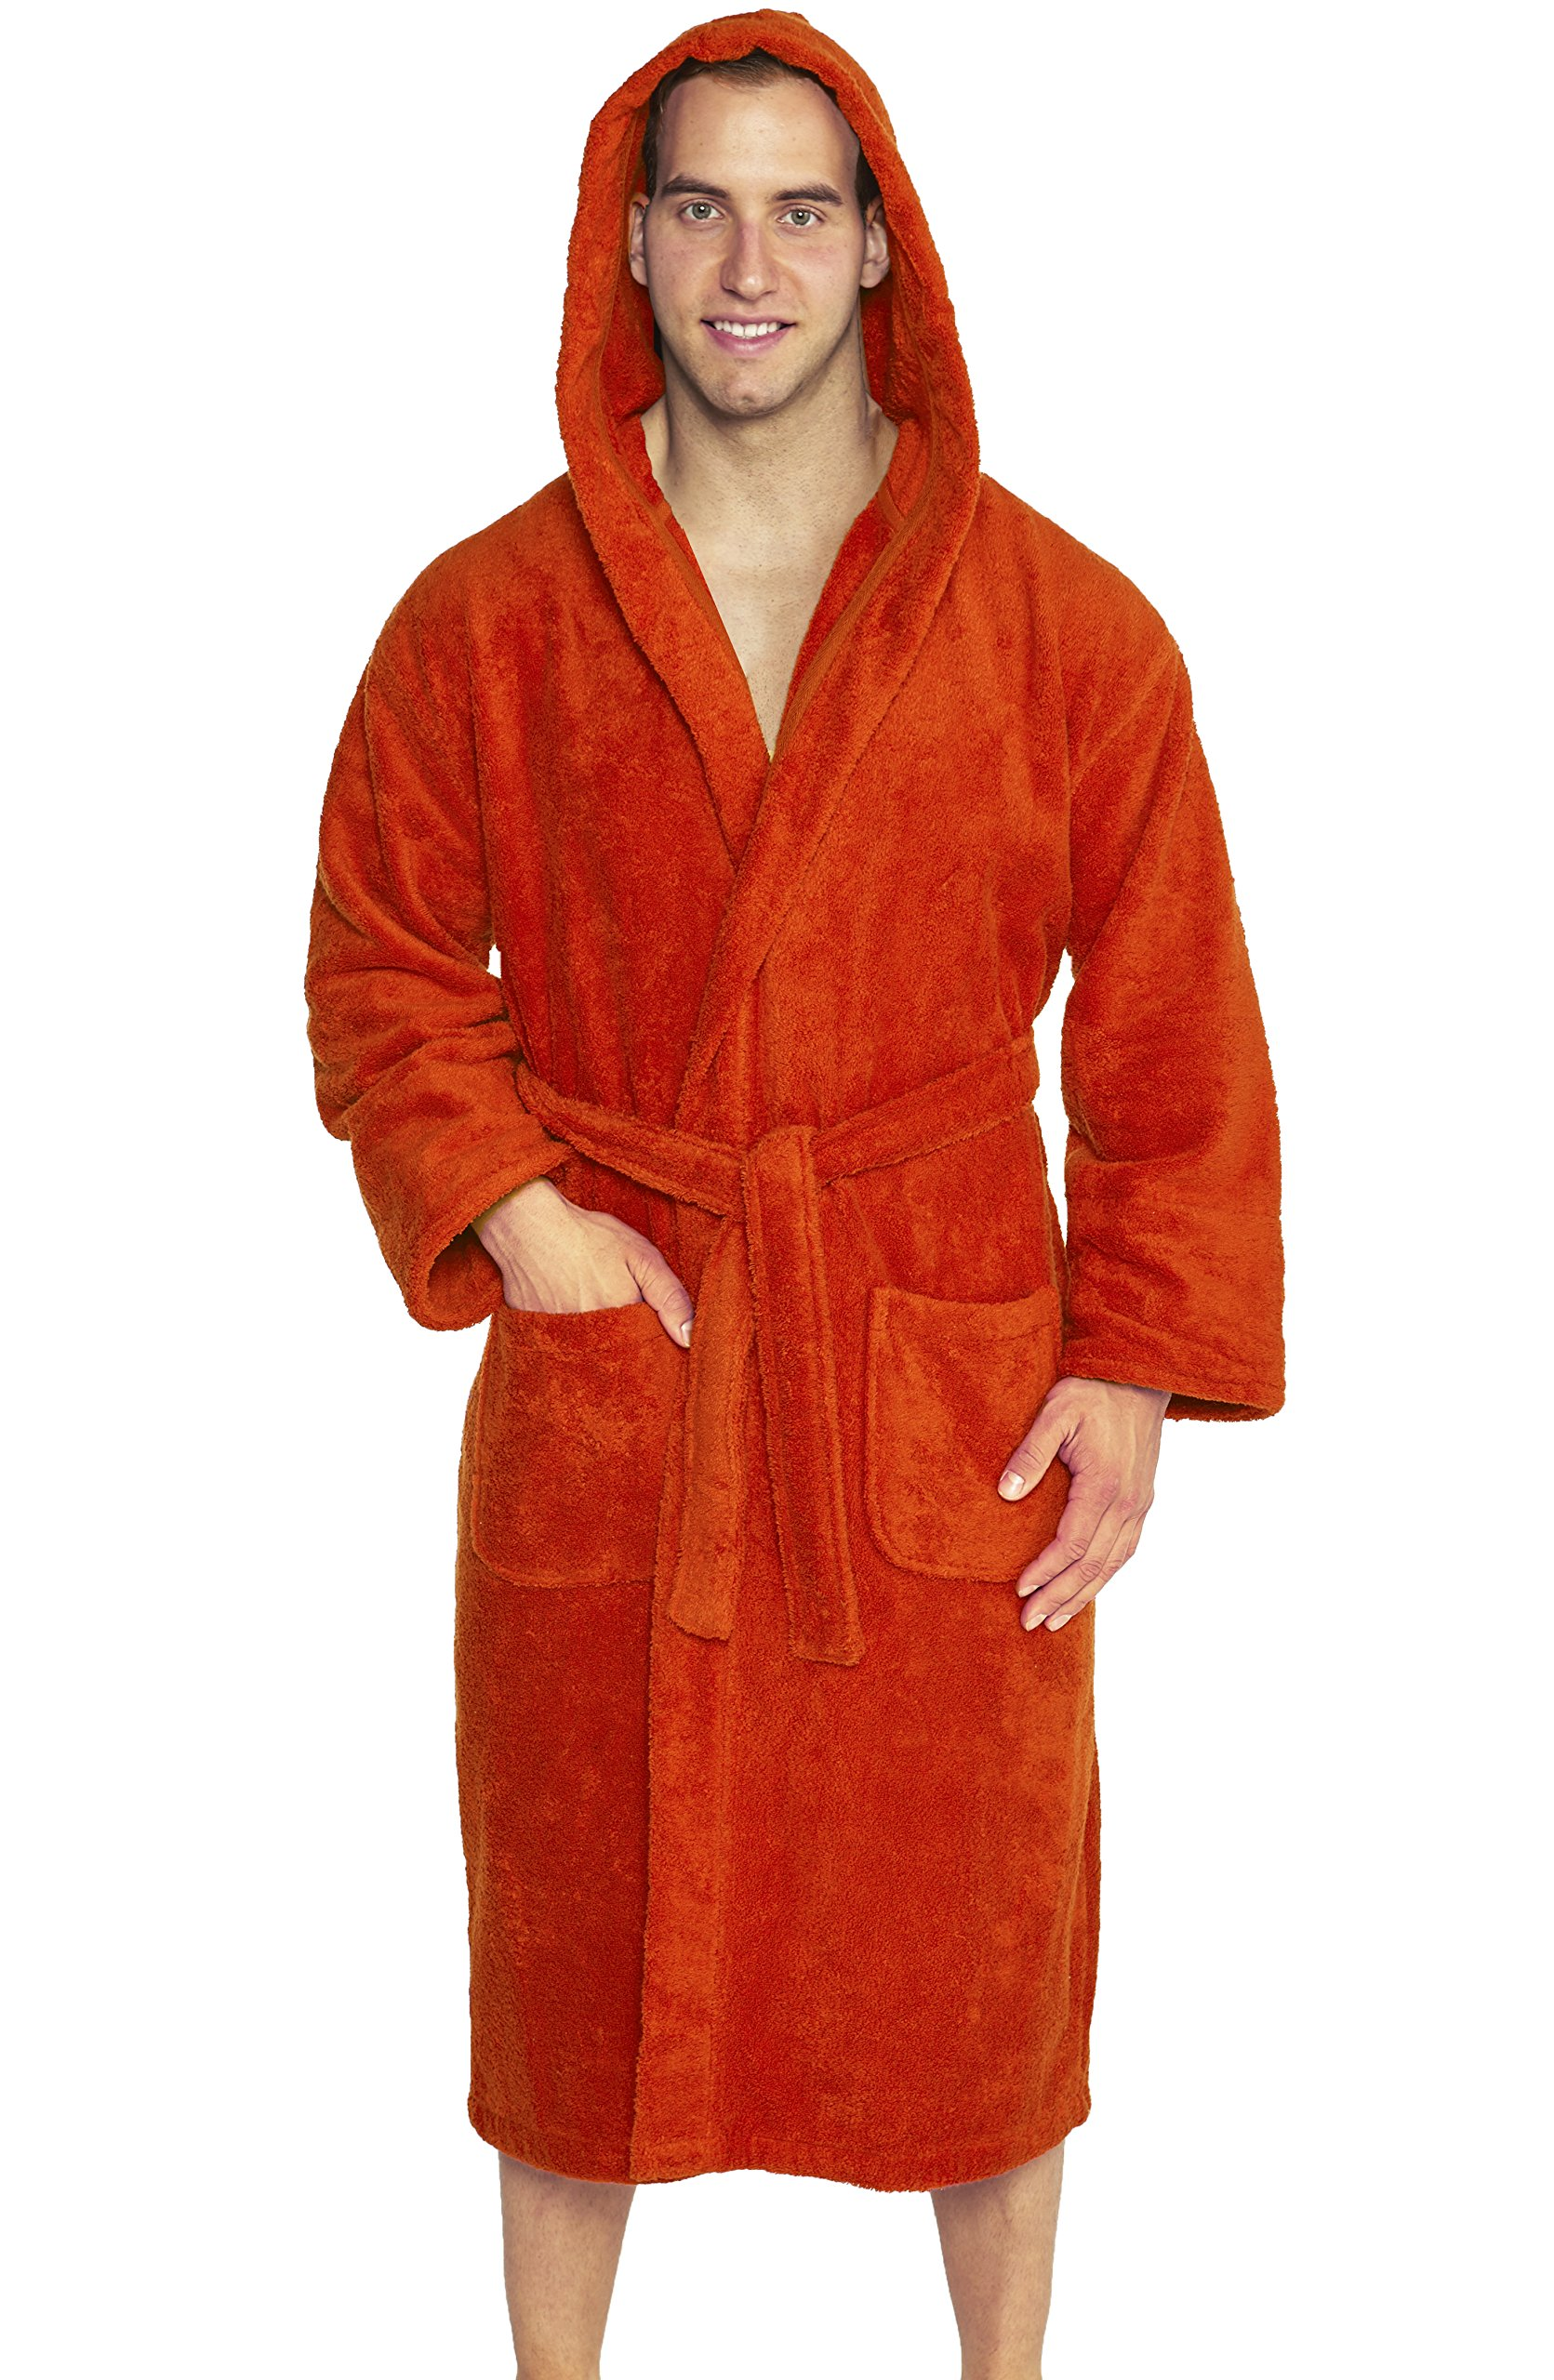 TurkishTowels Parador Full Length Hooded Terry Bathrobe Unisex, 100% Combed Pure Turkish Cotton, Made In Turkey,Rust,One Size Fits Most